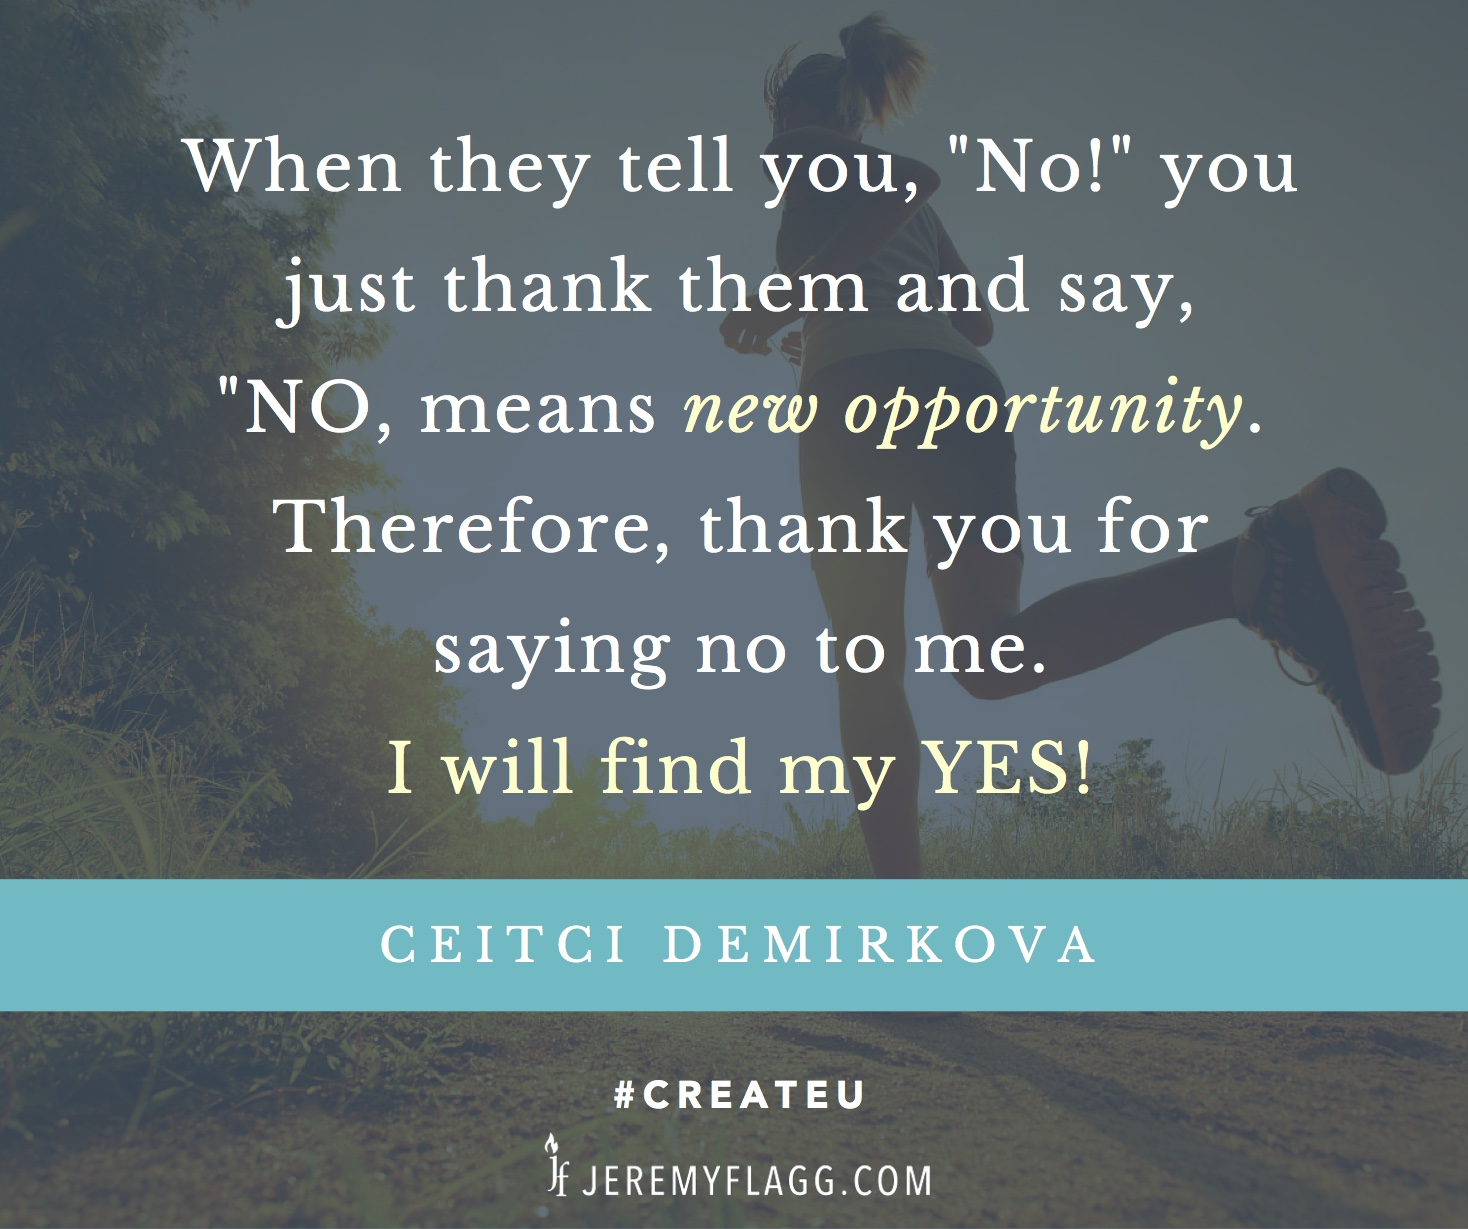 NO-new-opportunity-Ceitci-Demirkova-quote-FB